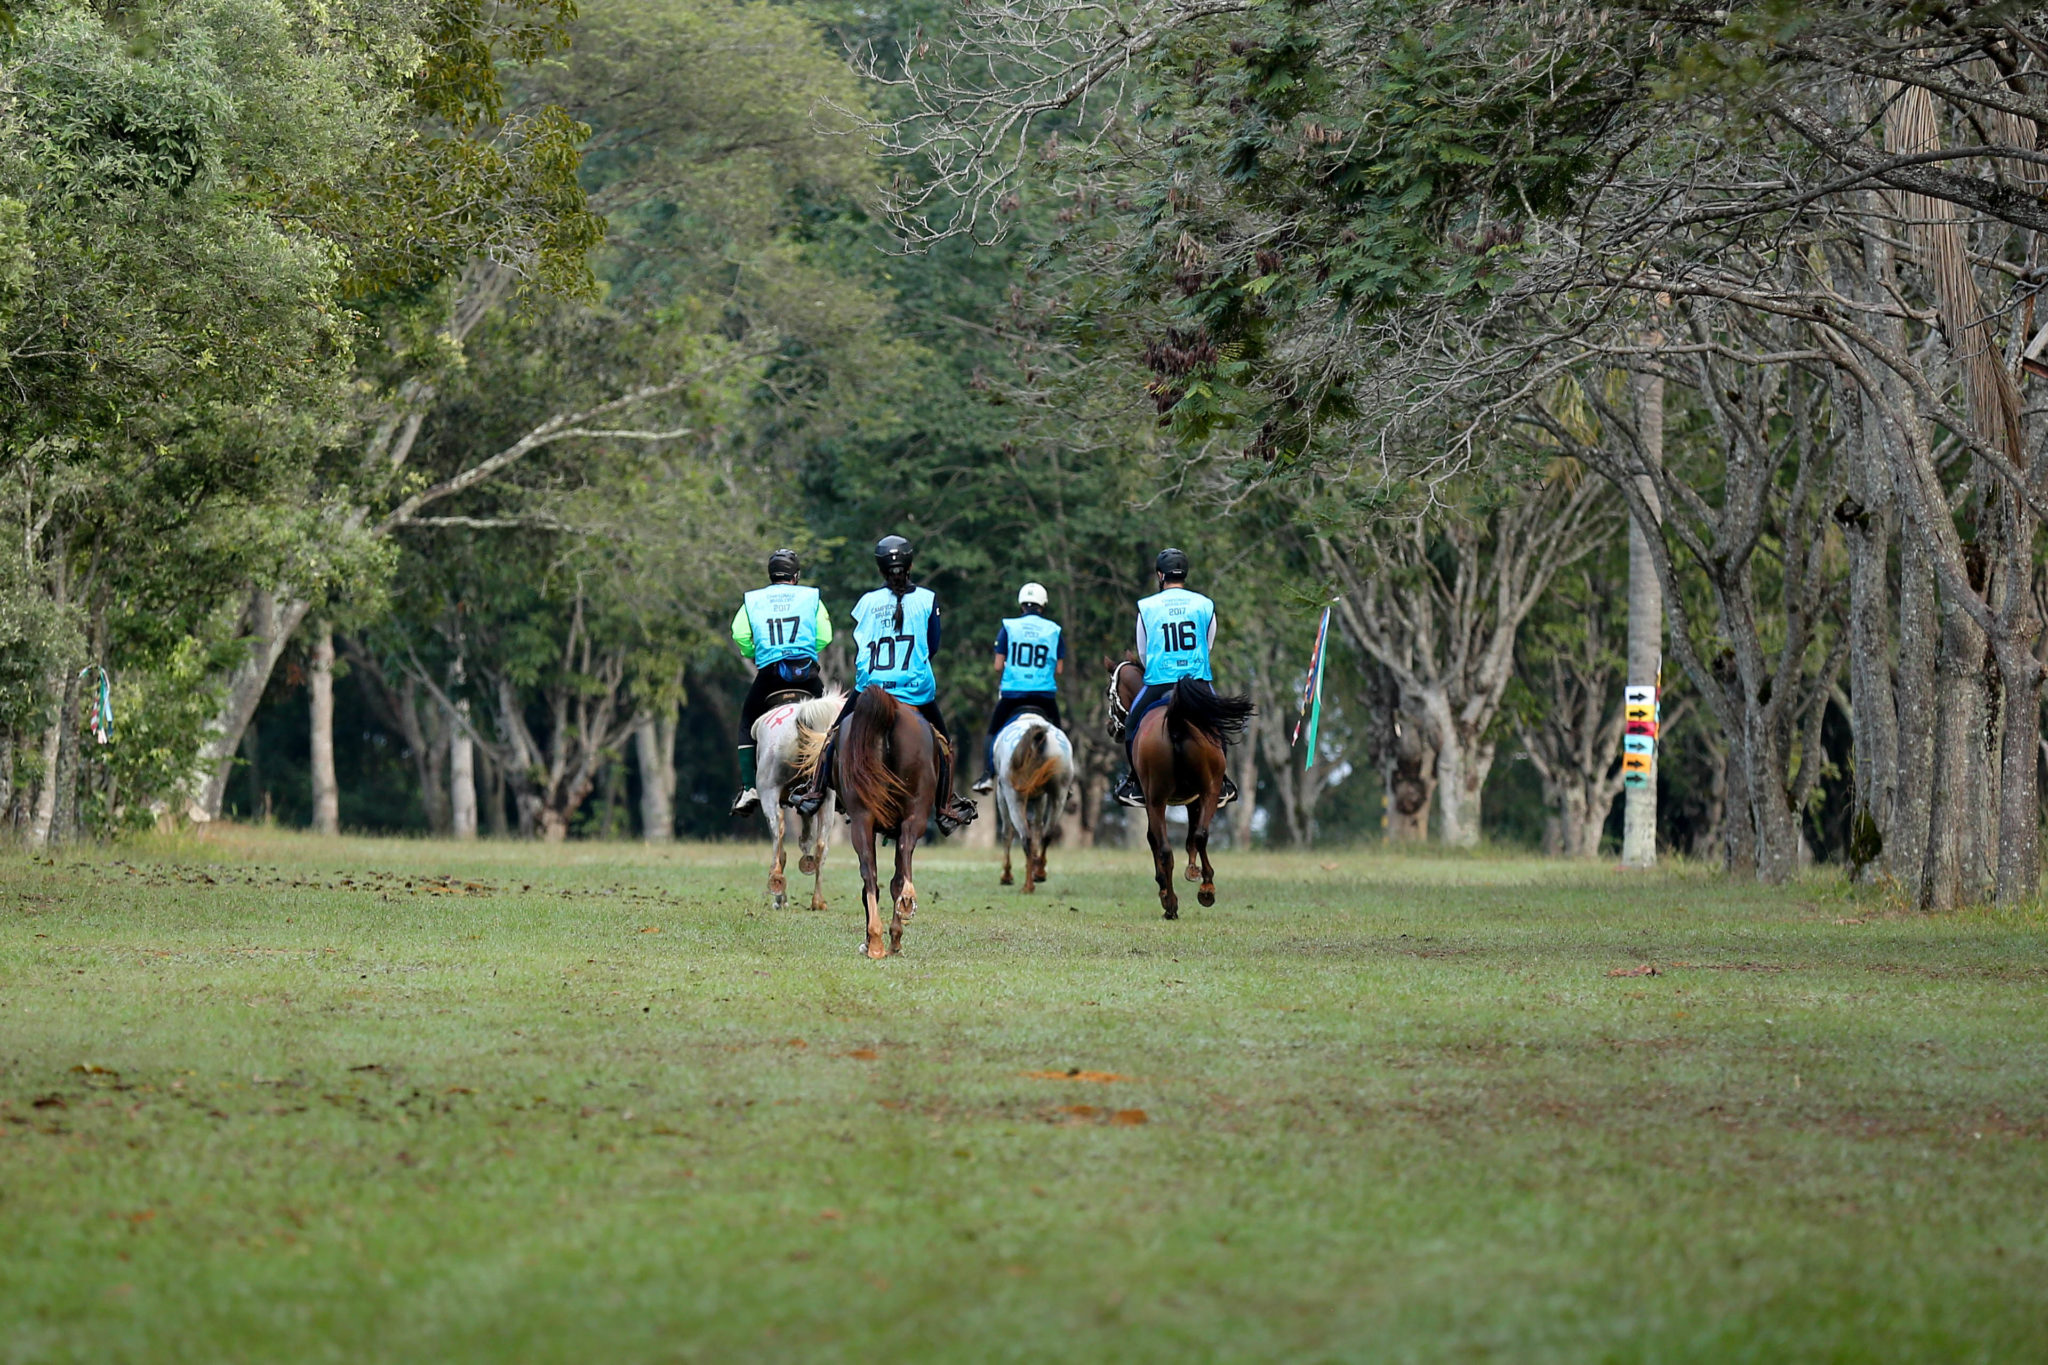 Endurance World Brasilia. Riders leaving for the next loop.